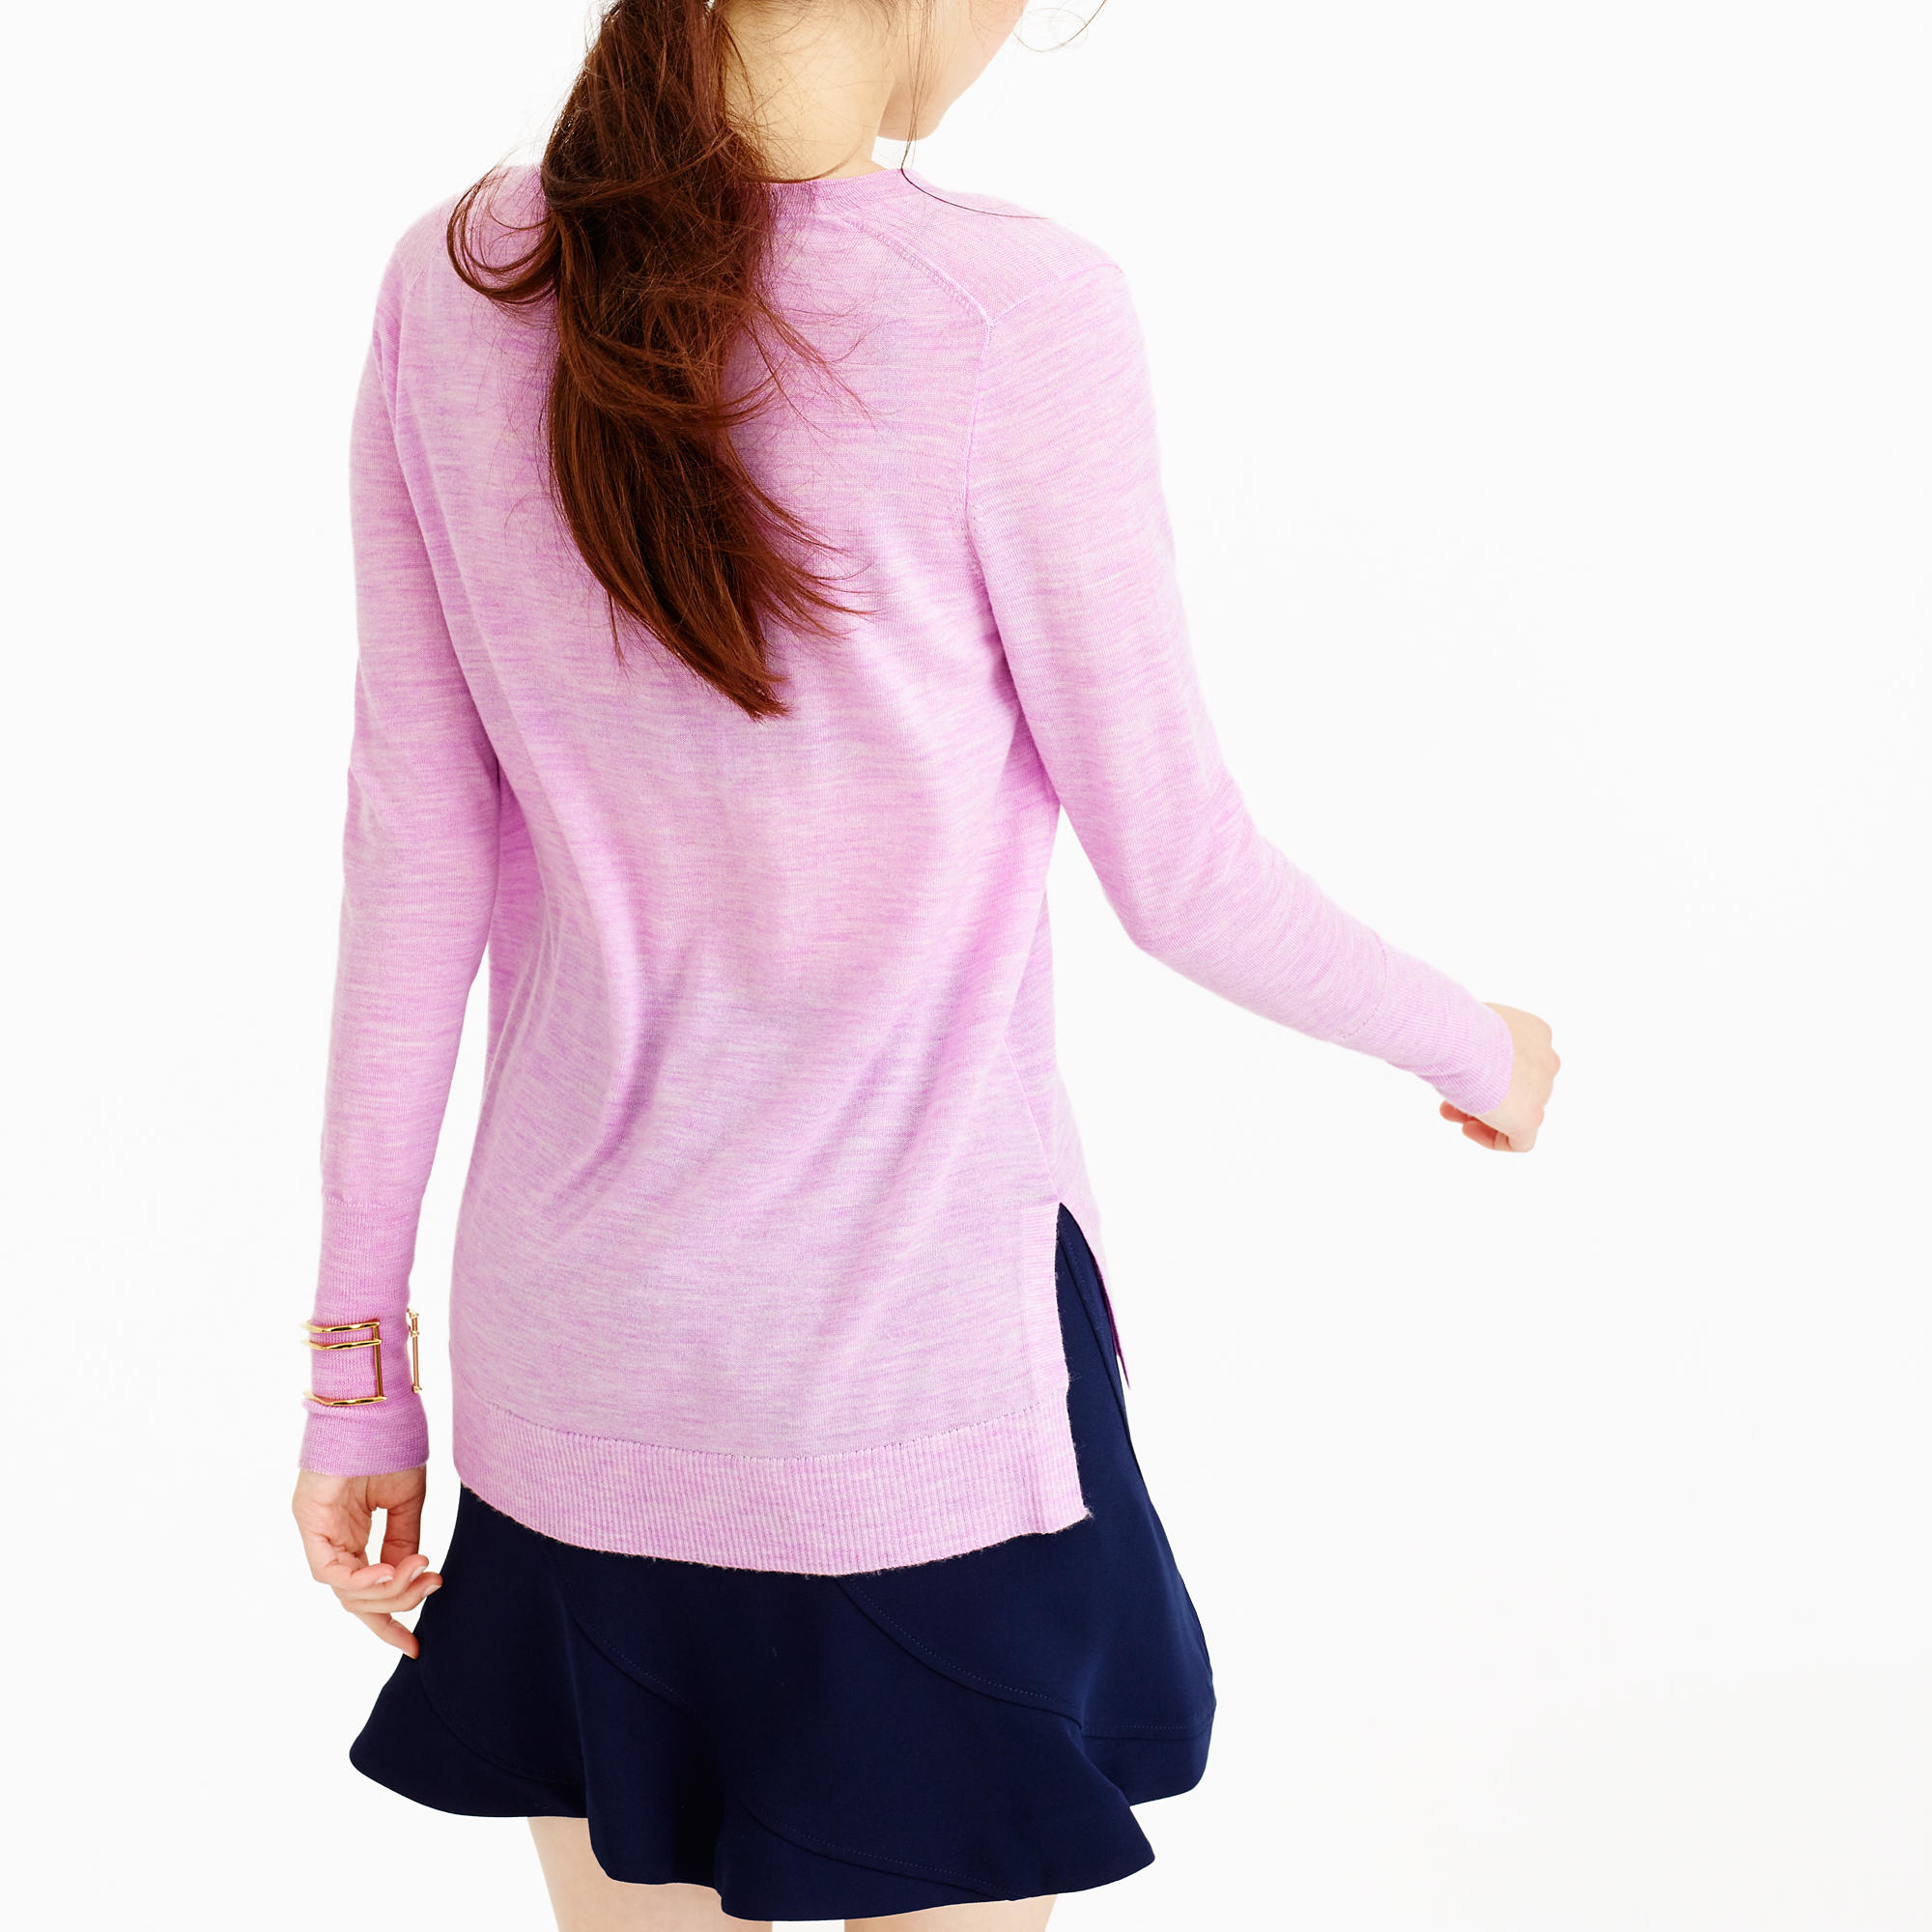 J.crew Petite Merino Wool V-neck Tunic Sweater in Purple | Lyst